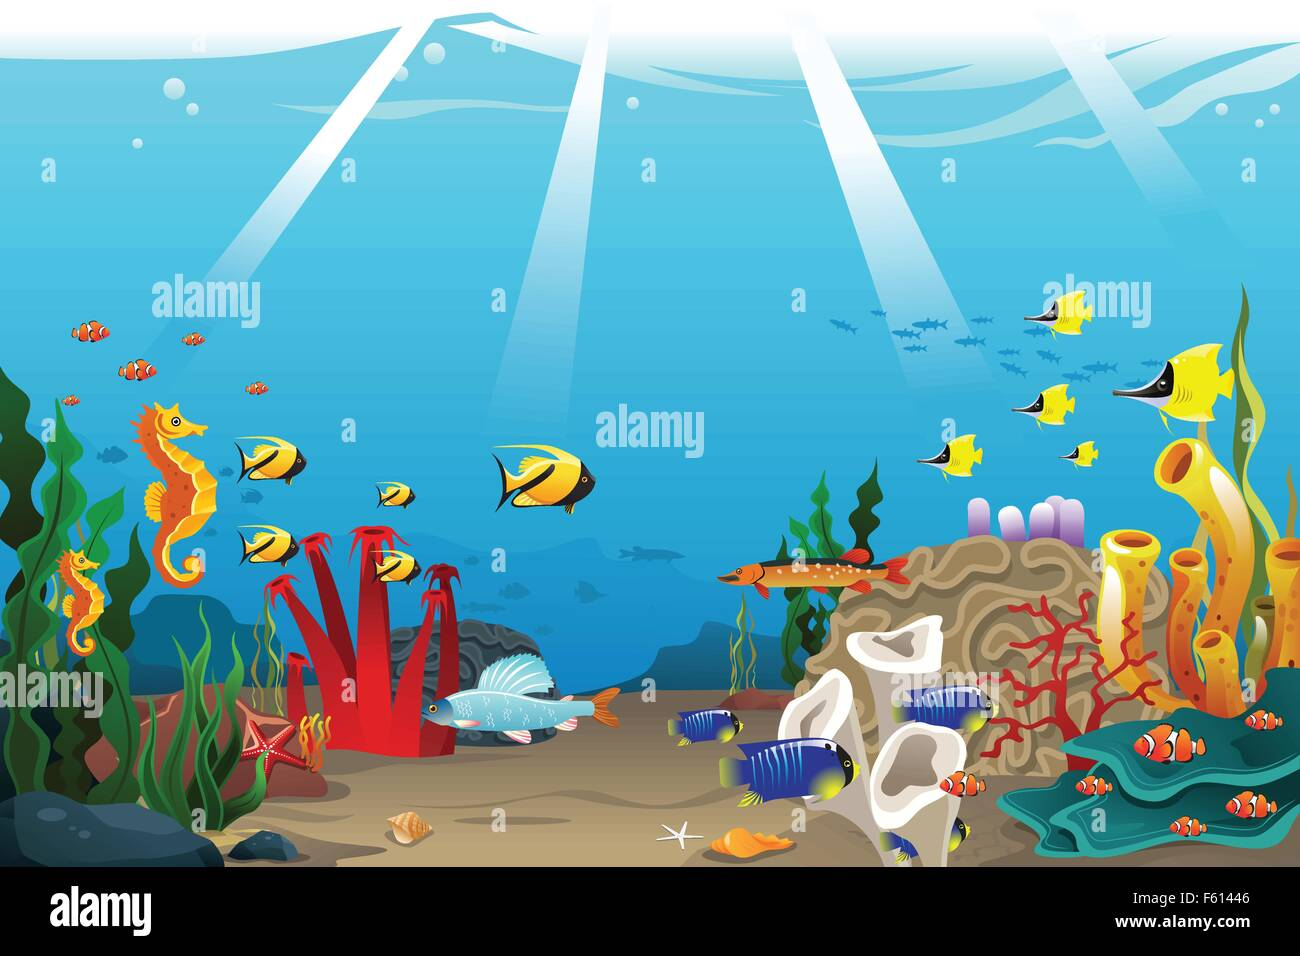 A vector illustration of marine life design - Stock Vector